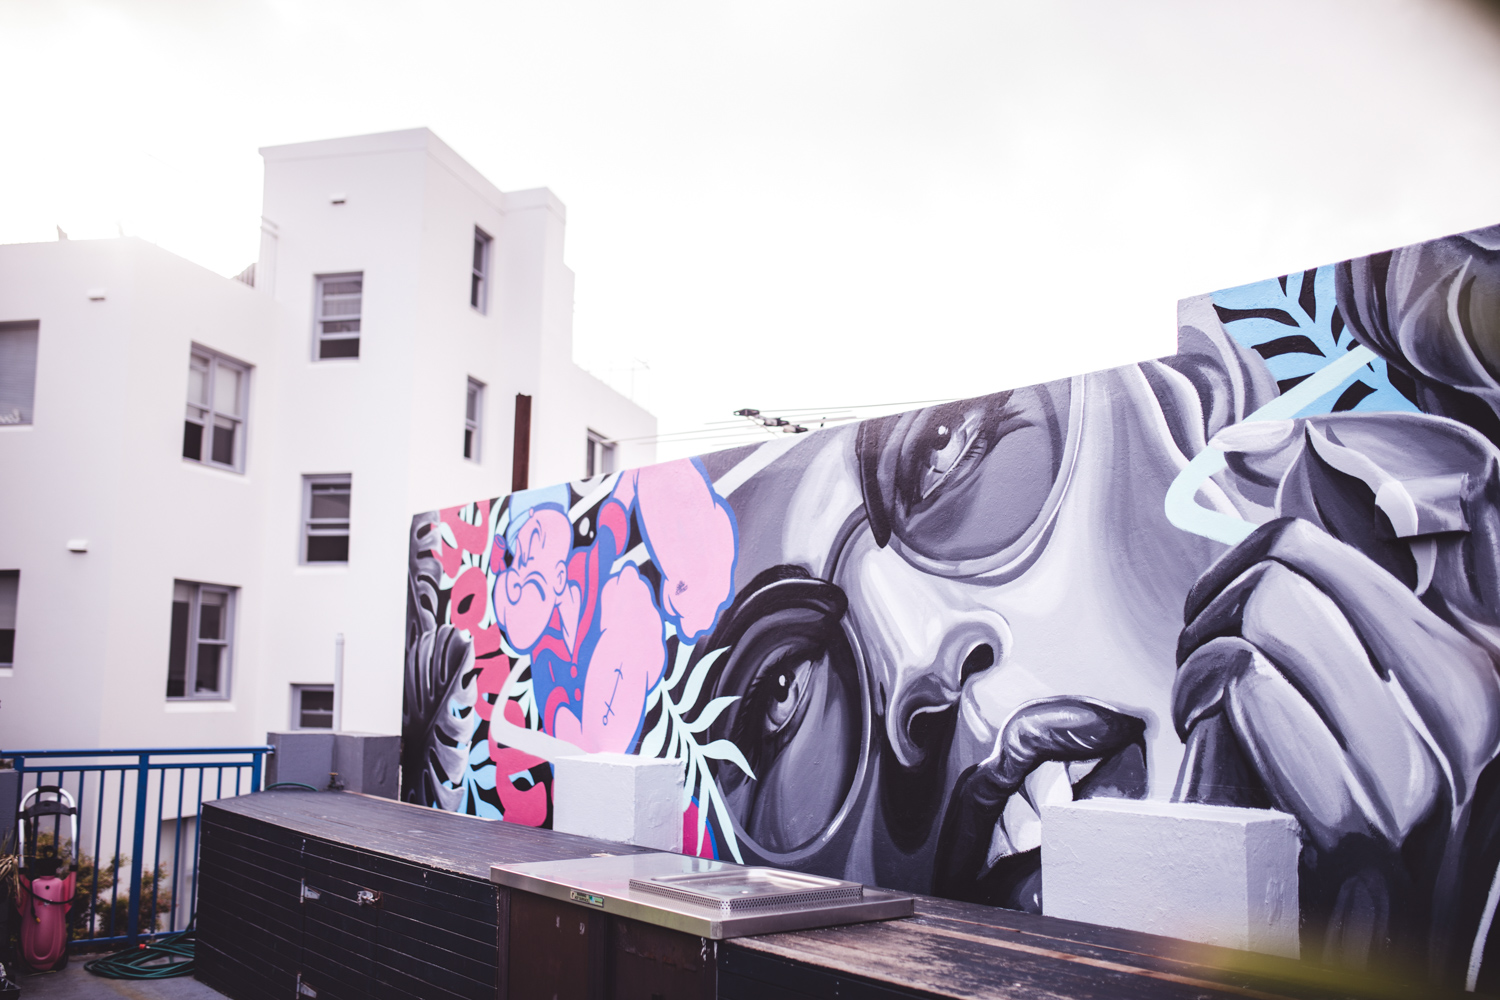 Noahs_Bondi_Beach__mural_art_Authority_Creative_LOW_RES5Noahs_Bondi_Beach__mural_art_Authority_Creative_LOW_RESA4863-2.jpg